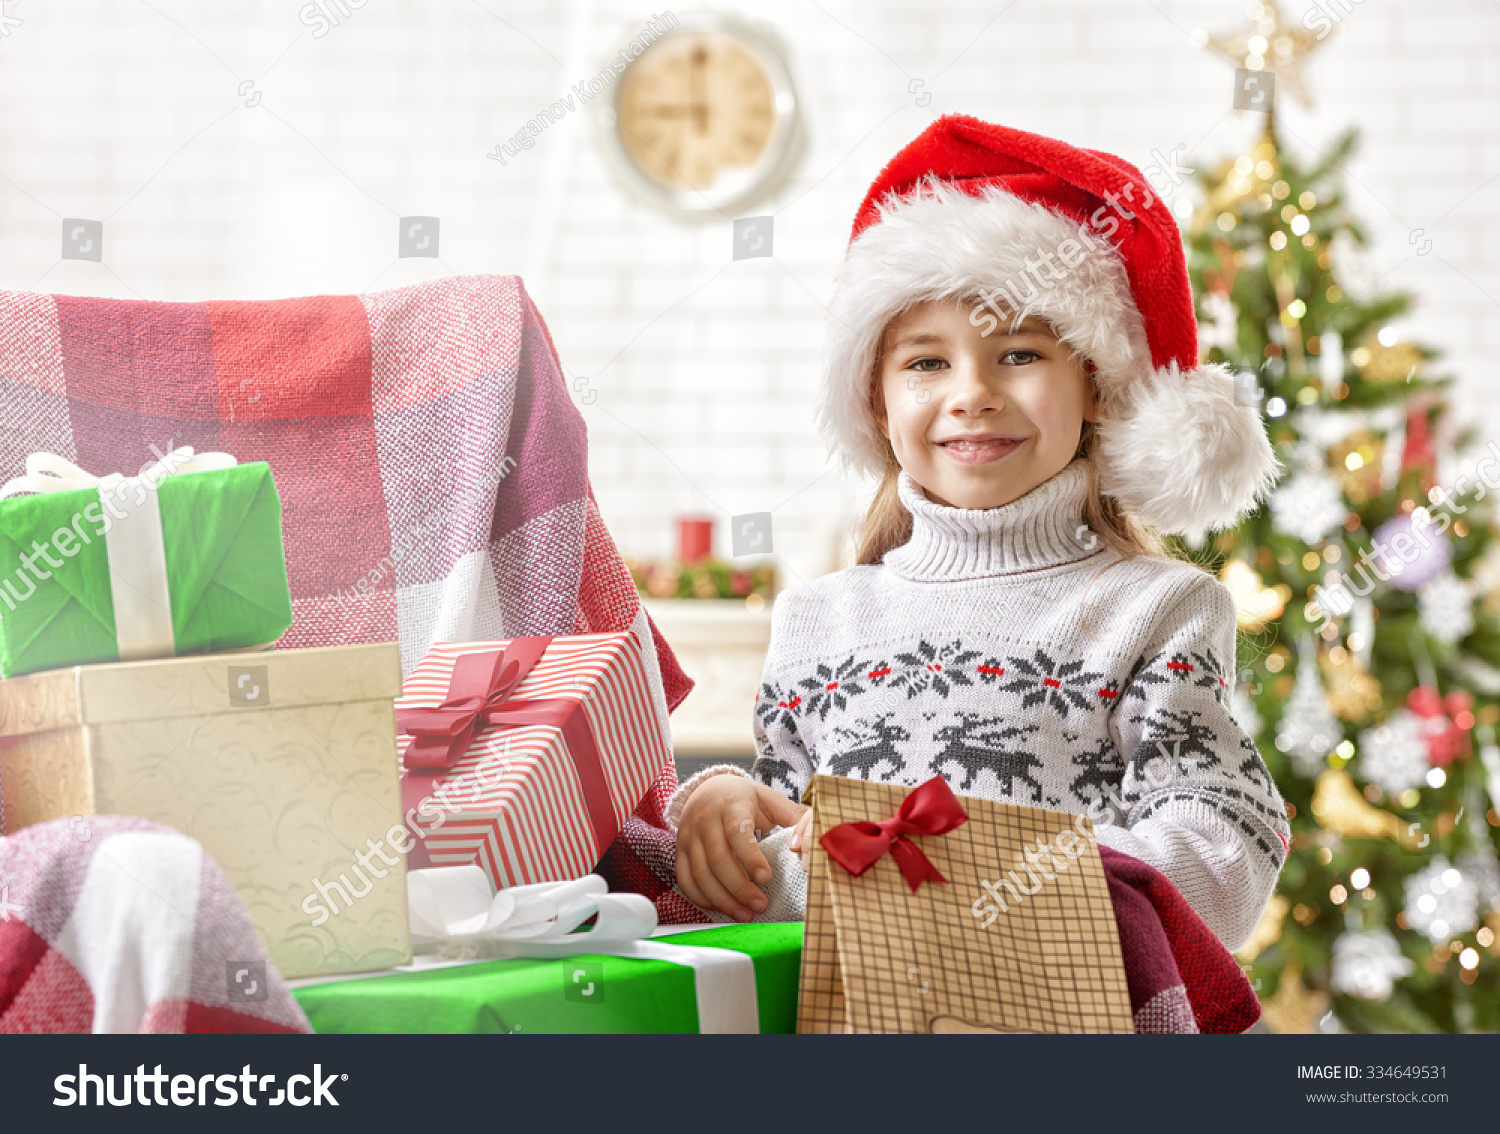 Cute Little Girl Christmas Gifts Stock Photo (Edit Now) 334649531 ...